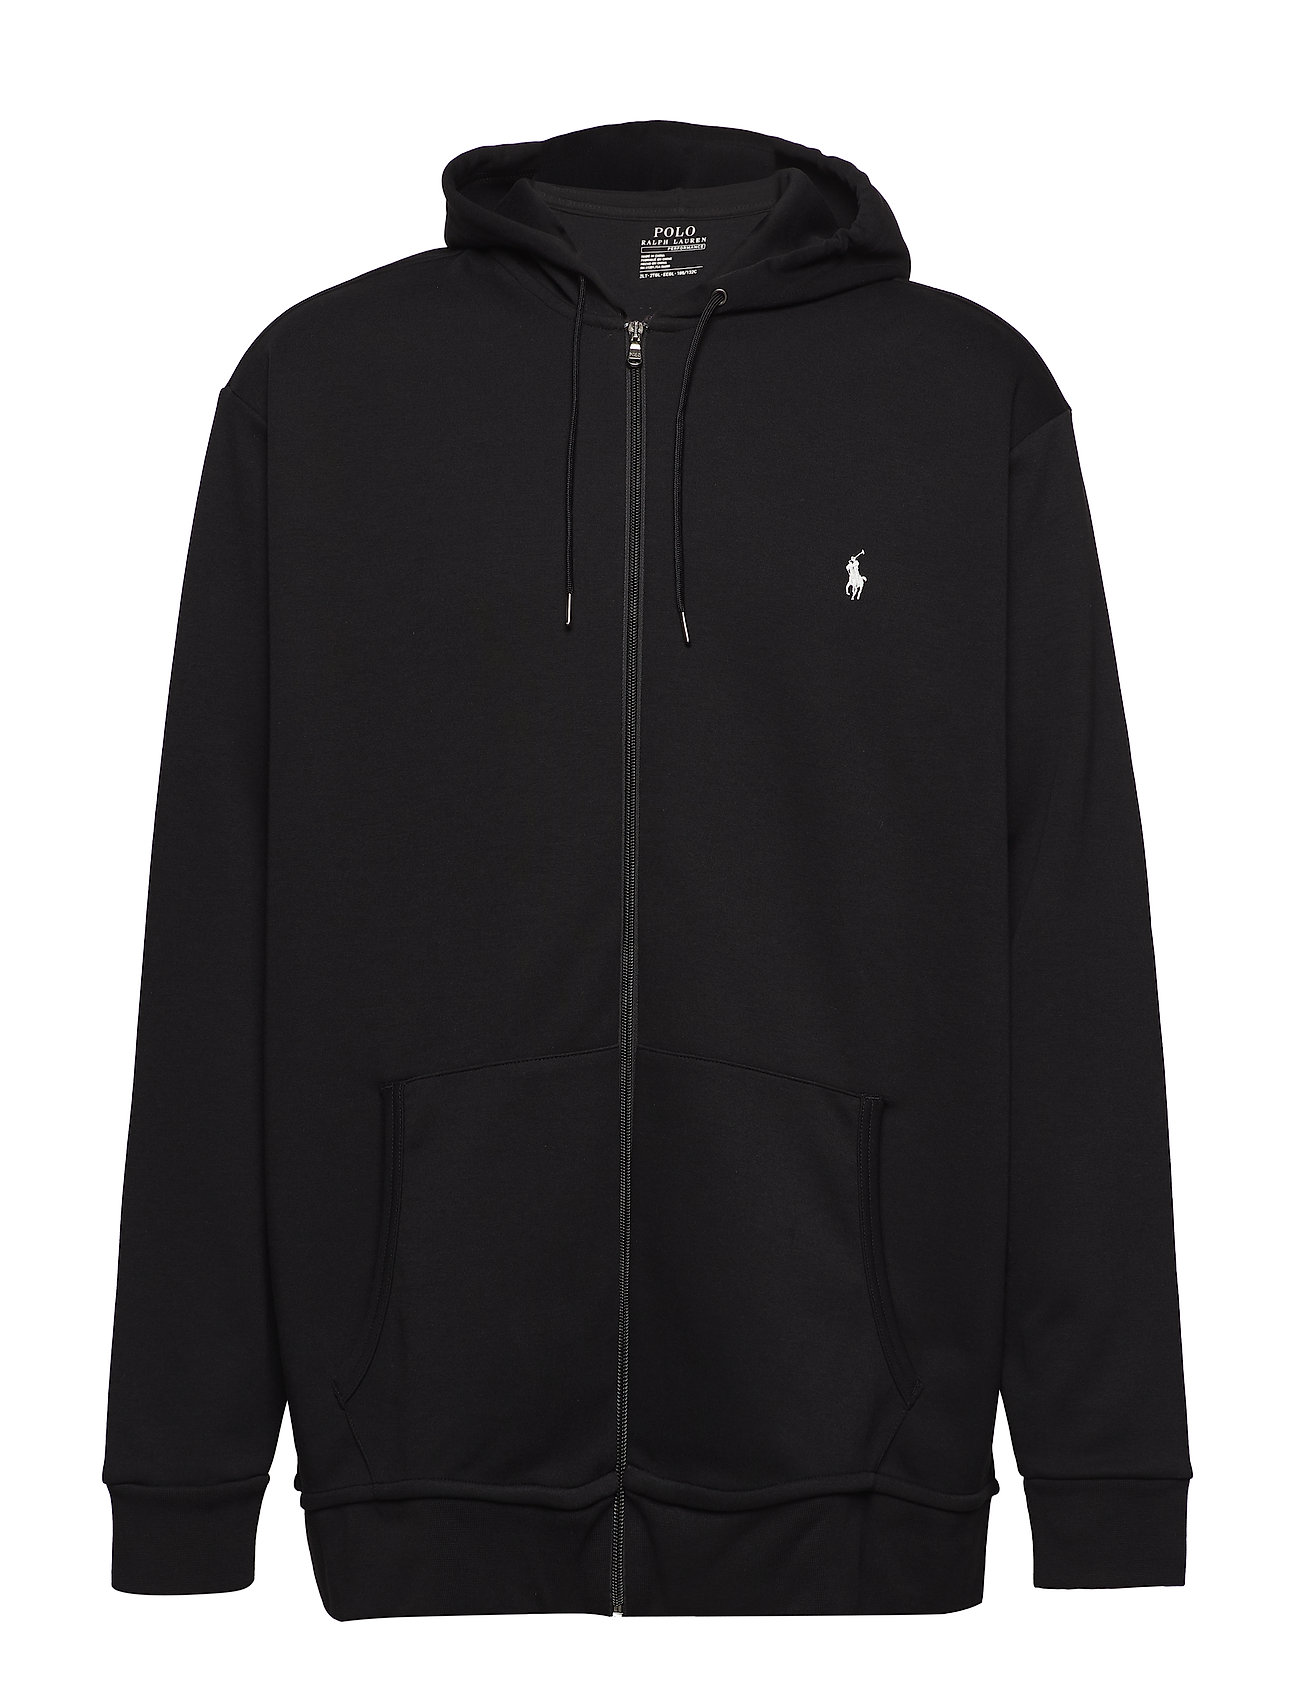 471f428471a5 Double-knit Full-zip Hoodie (Polo Black) (£74.25) - Polo Ralph ...